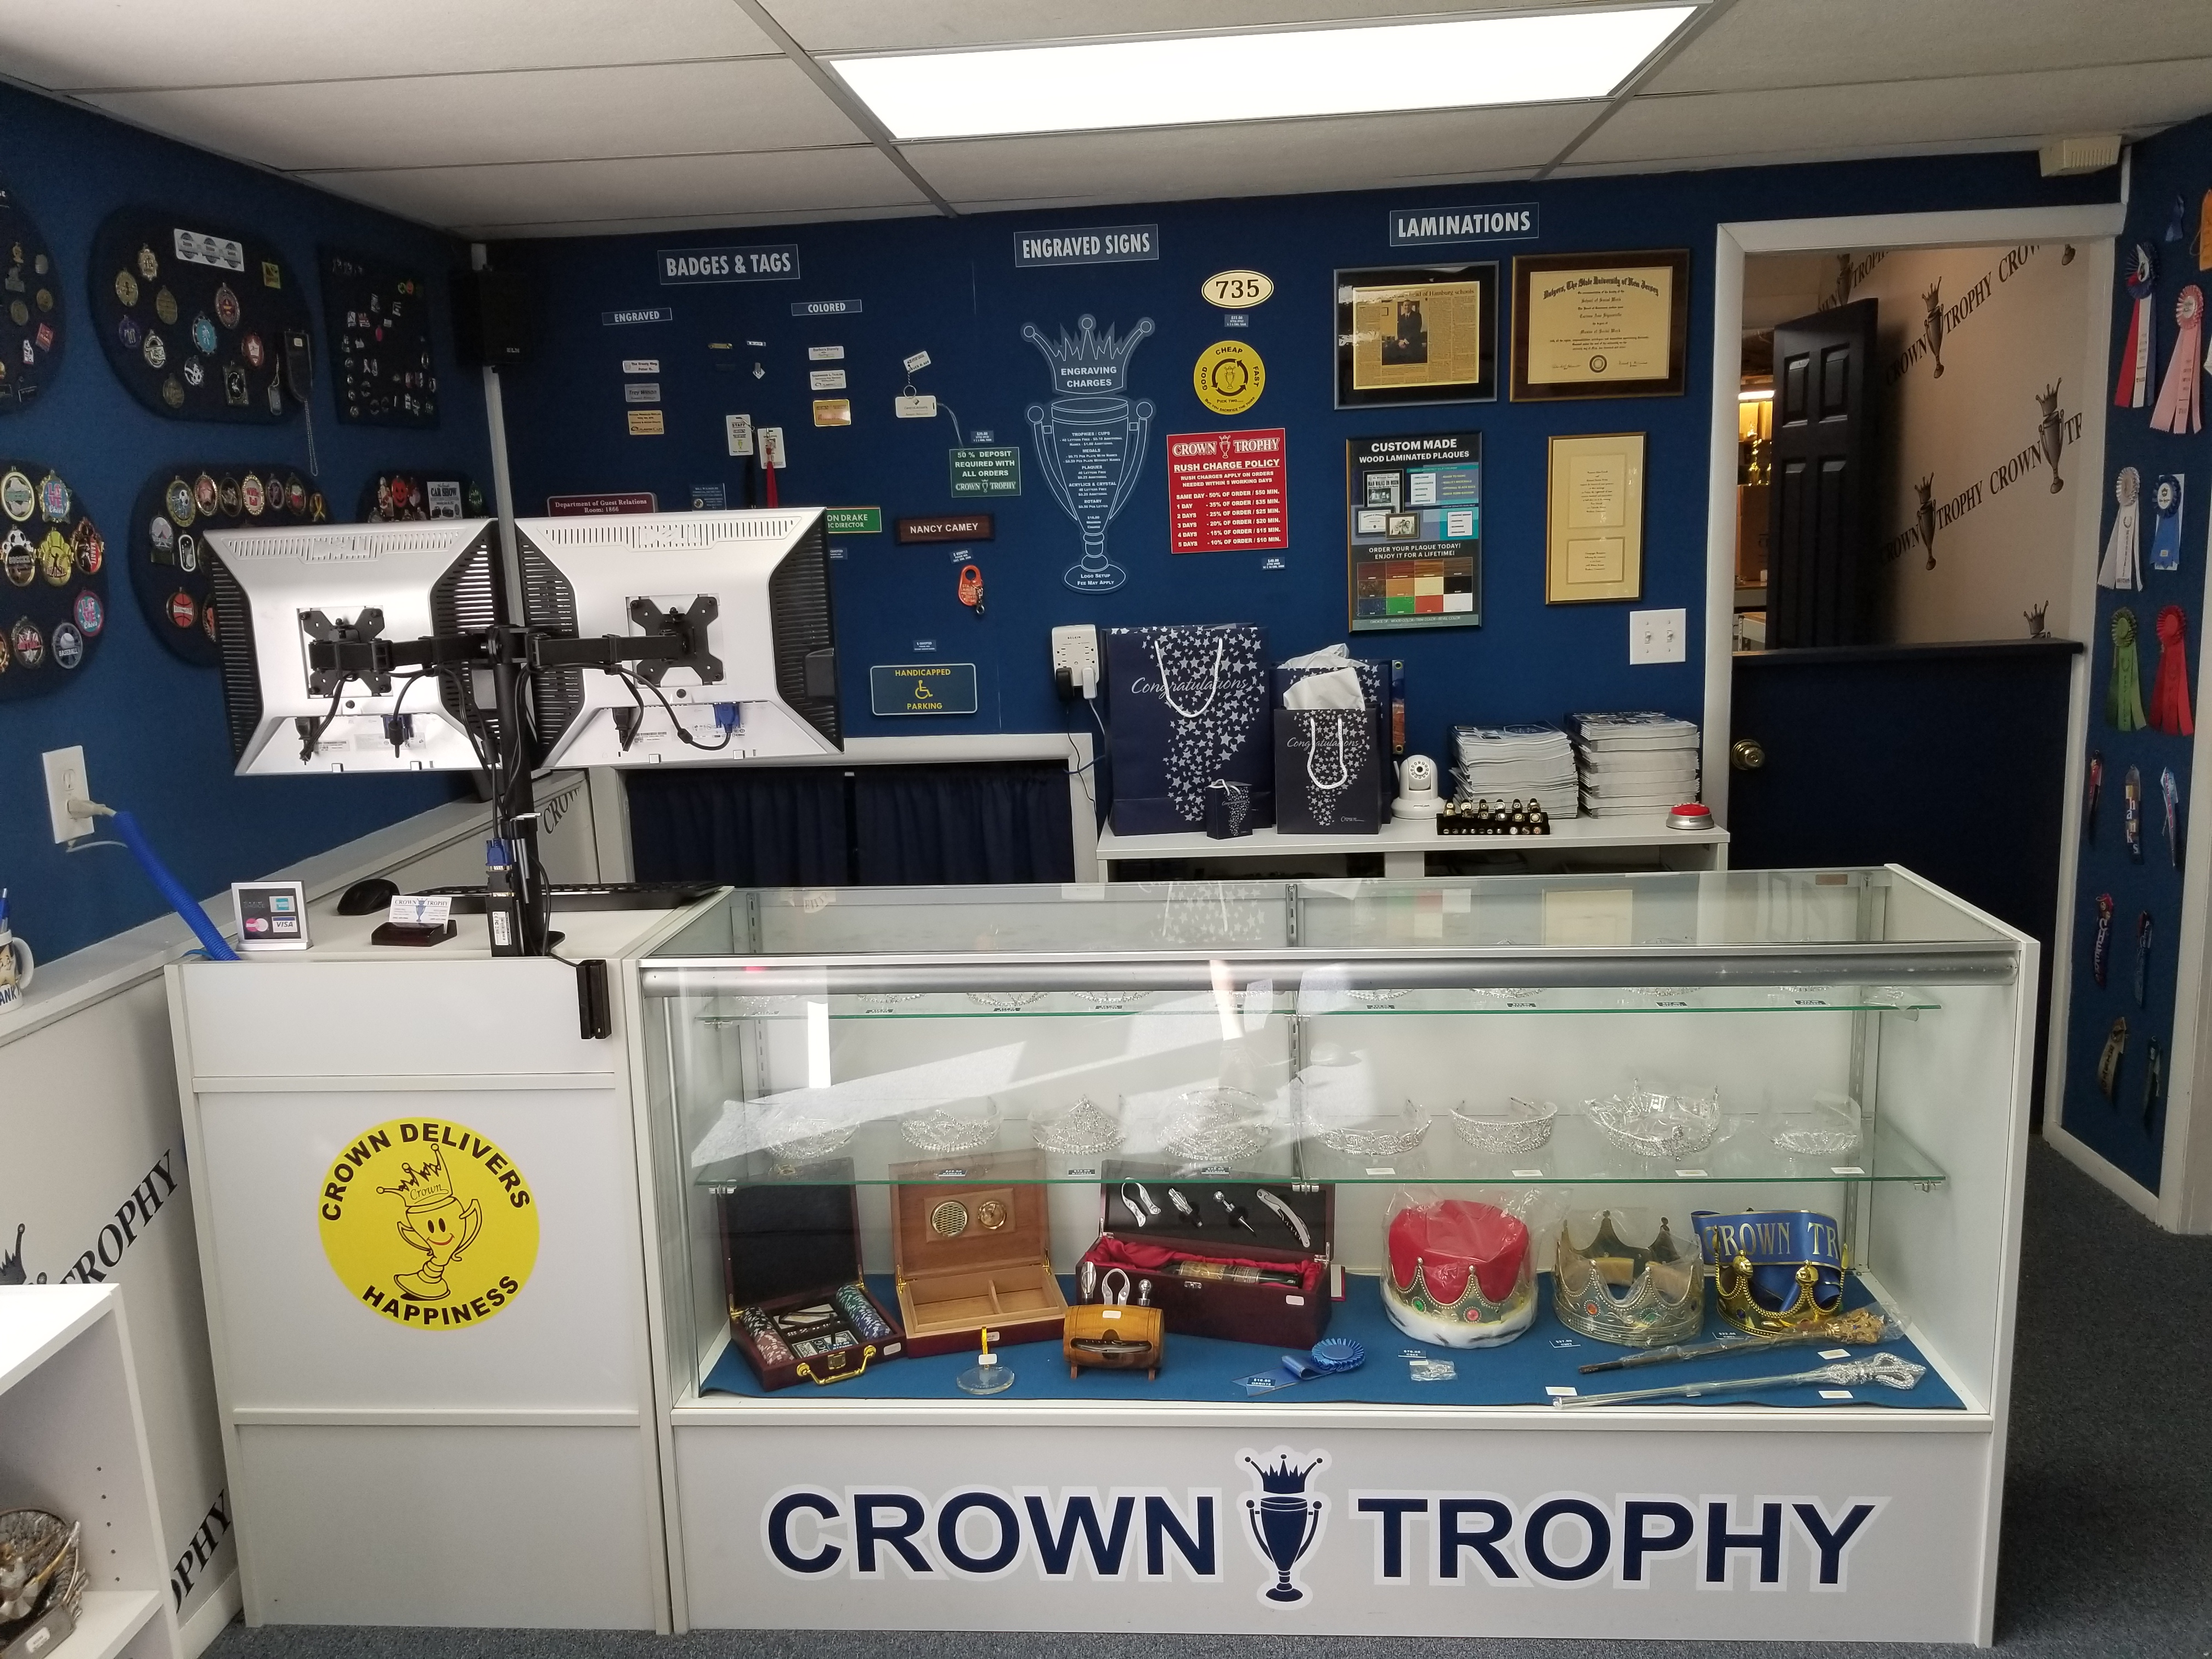 Crown Trophy image 1